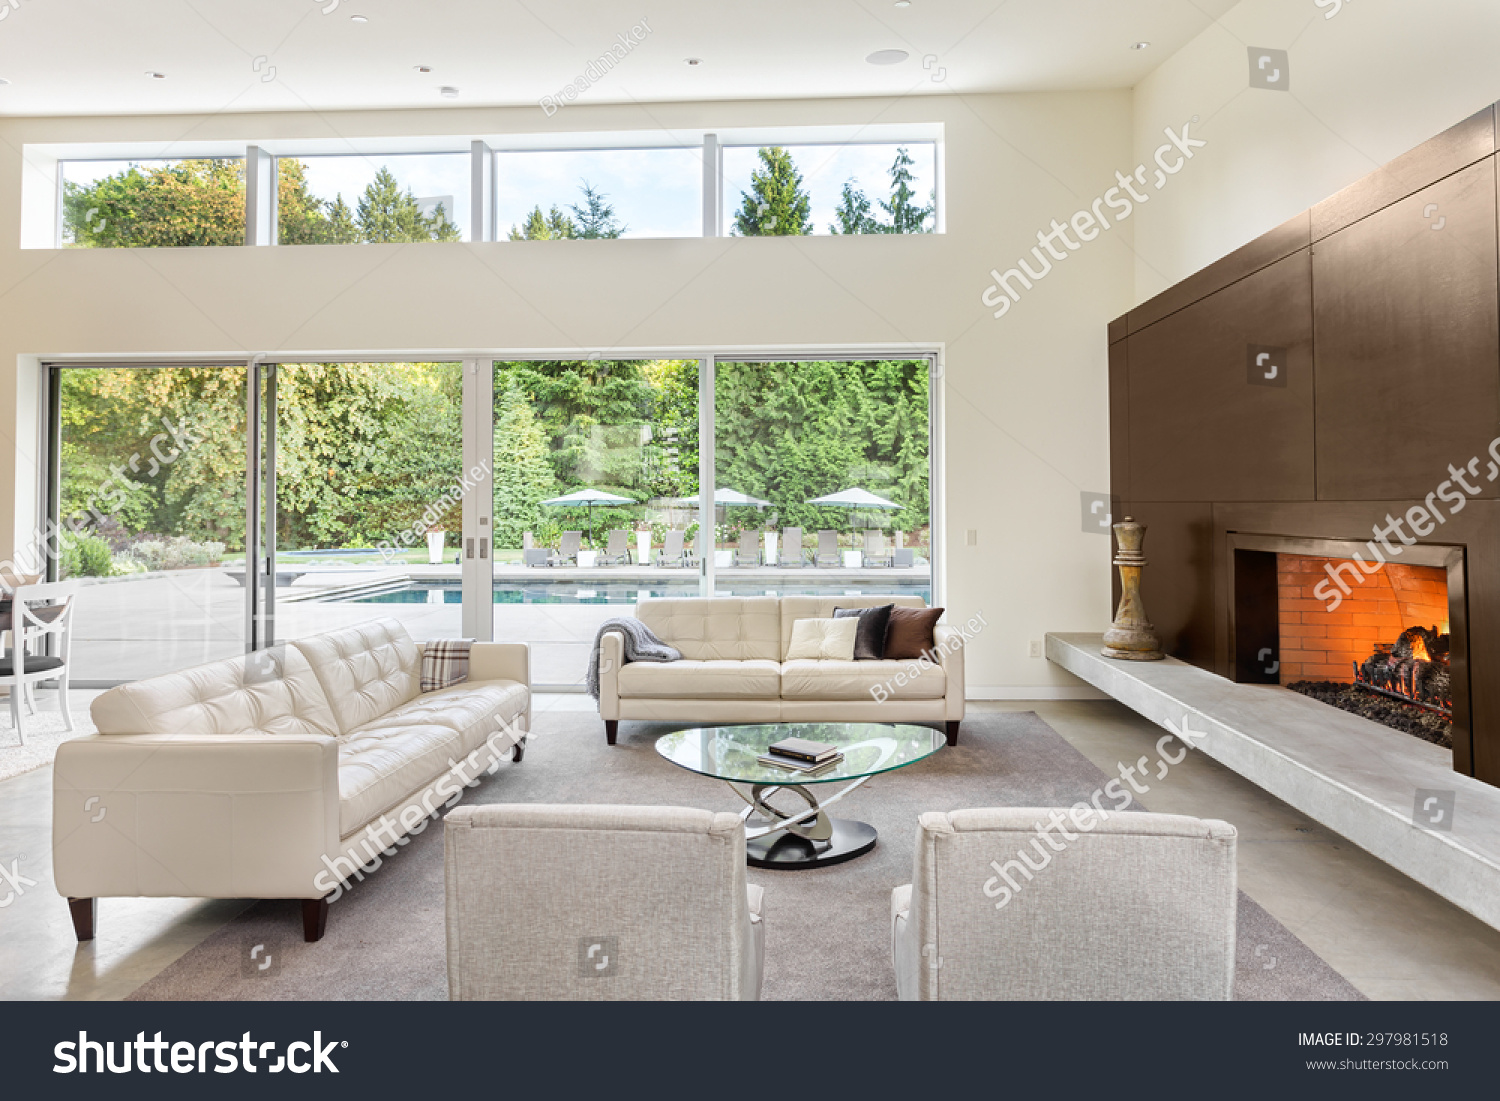 Tv Couches living room list of things design